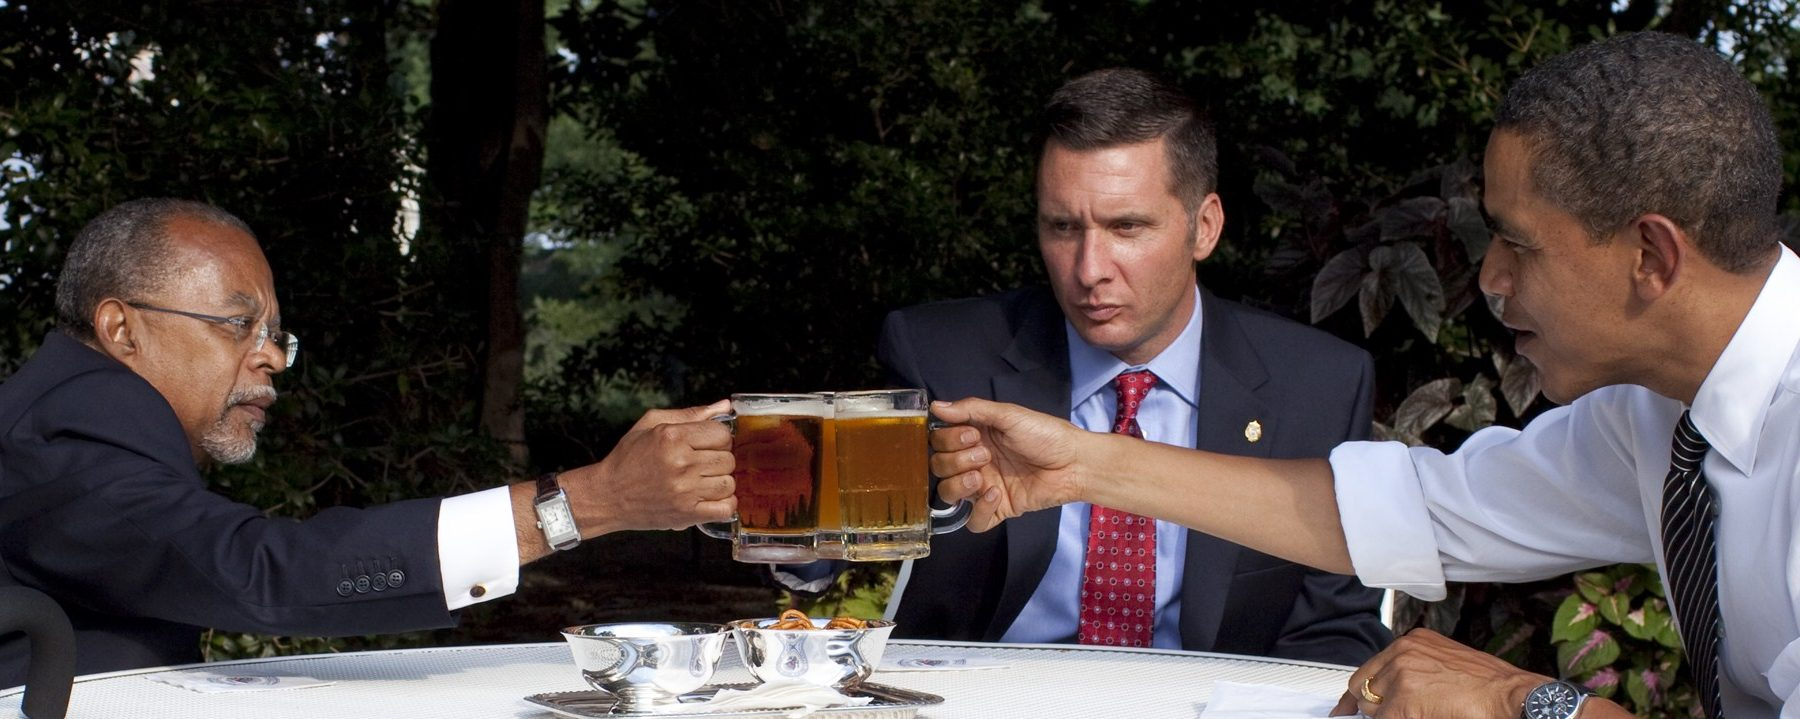 VIDEO: Brewing Craft Beer at the White House